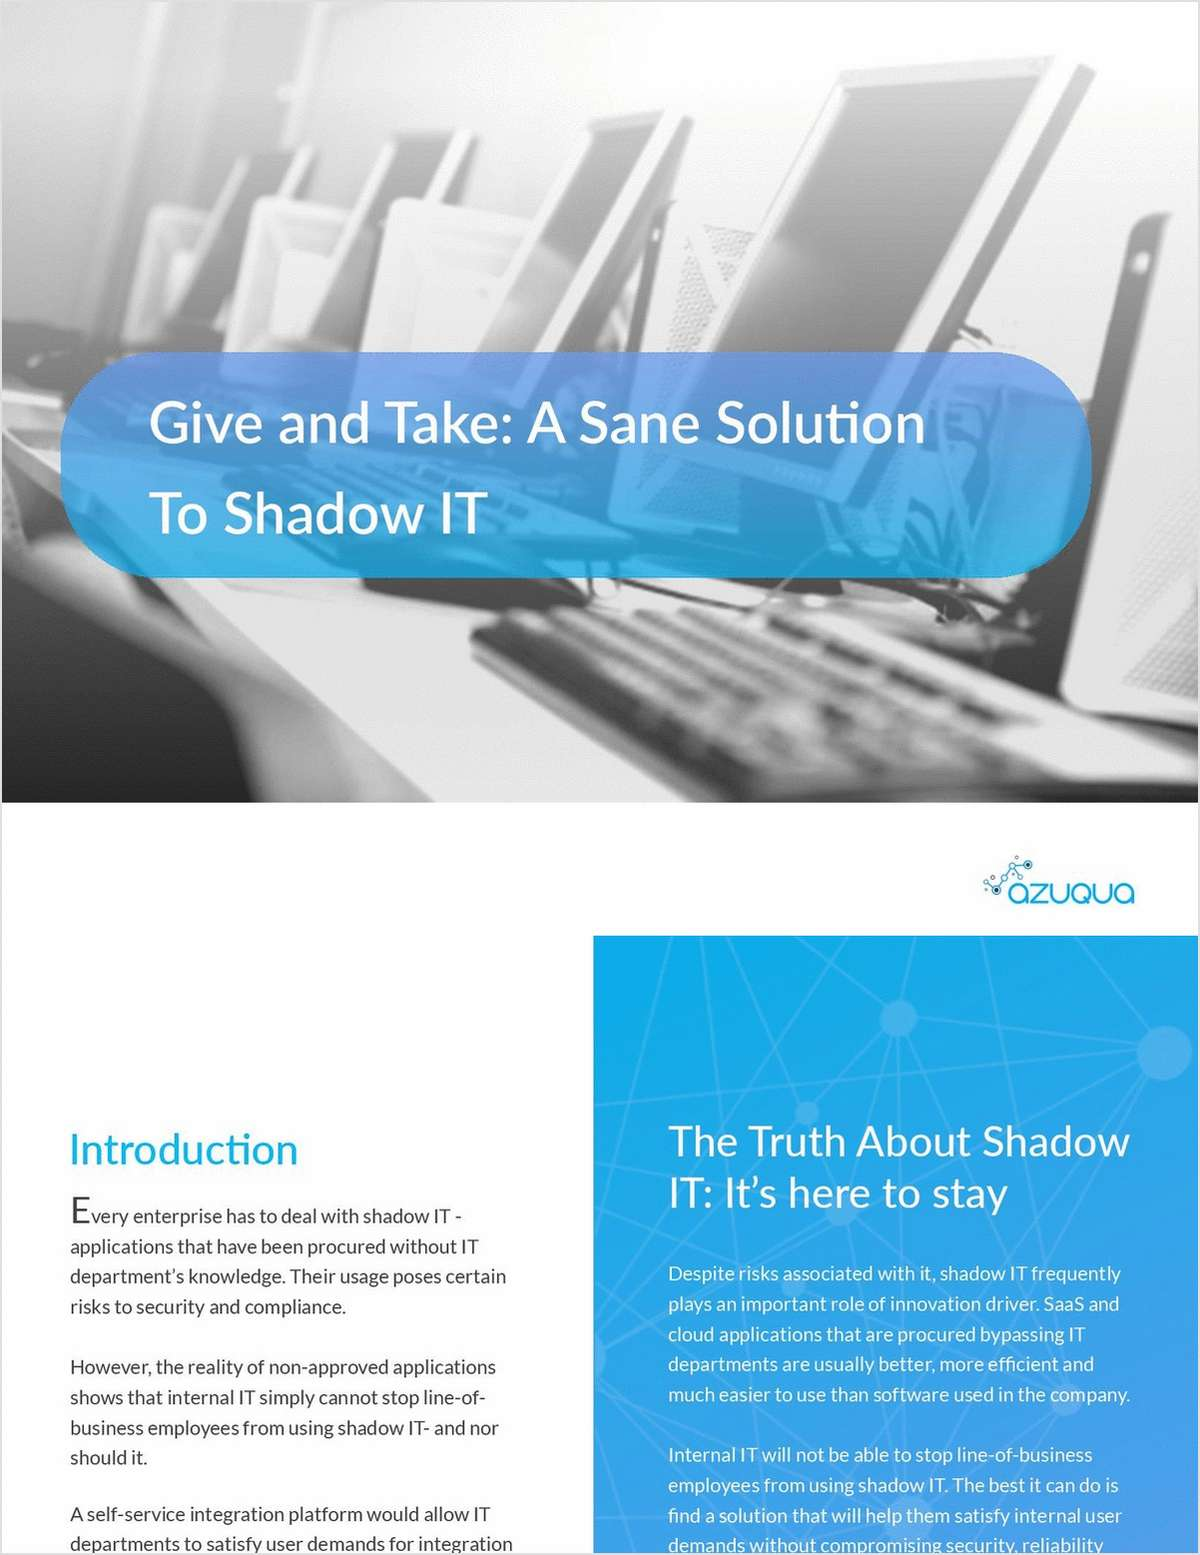 Give and Take: A Sane Solution To Shadow IT